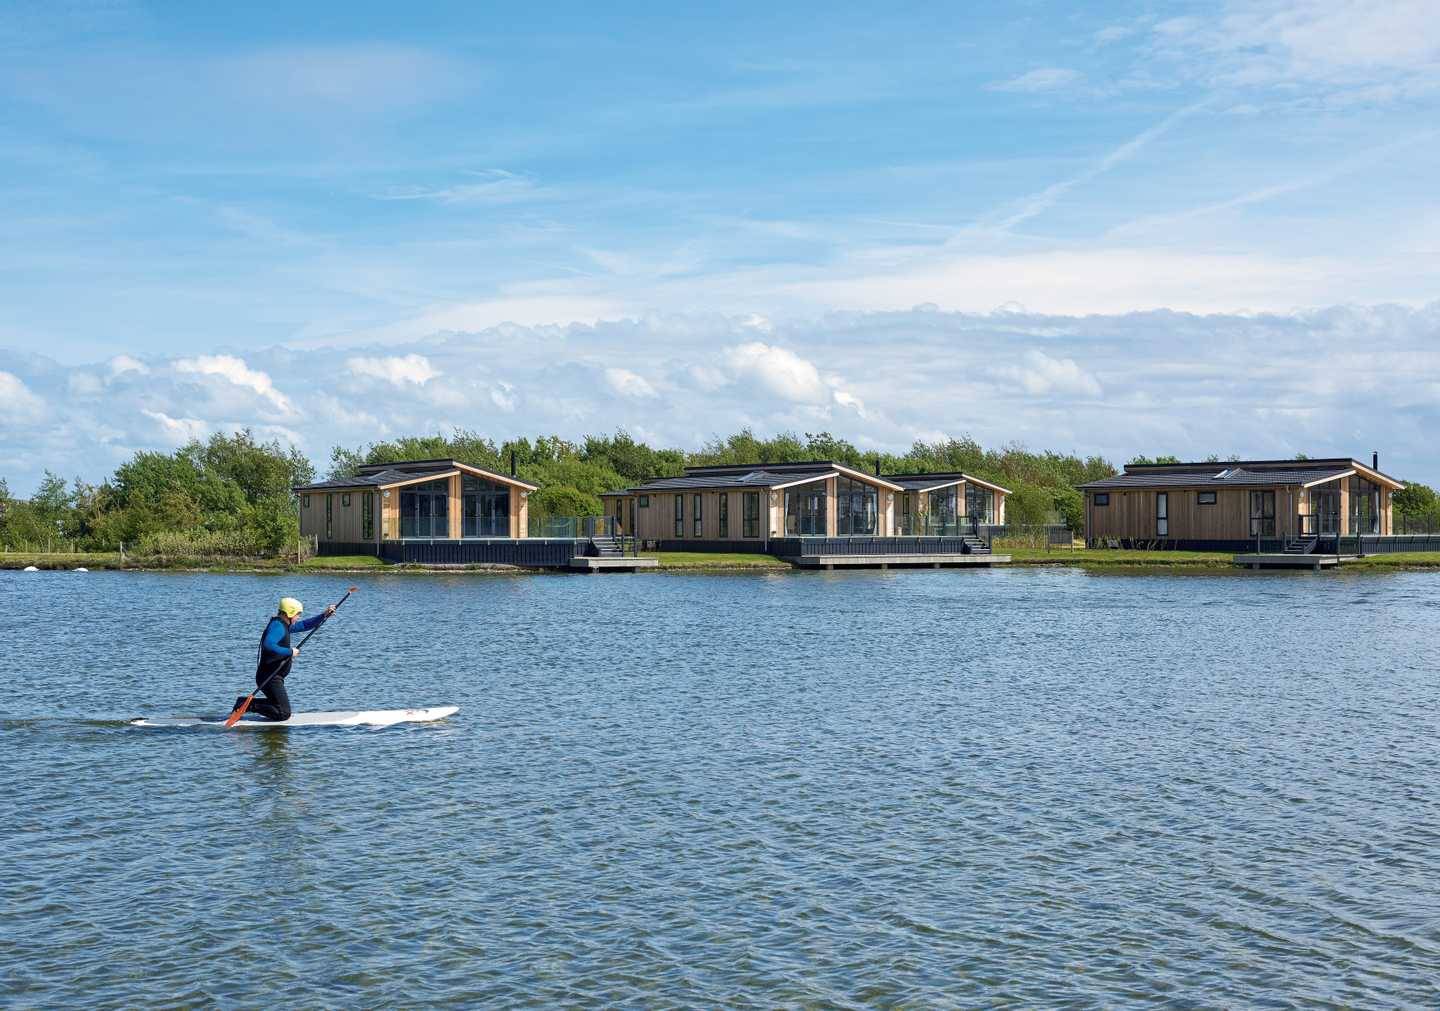 A person paddleboarding on the lake